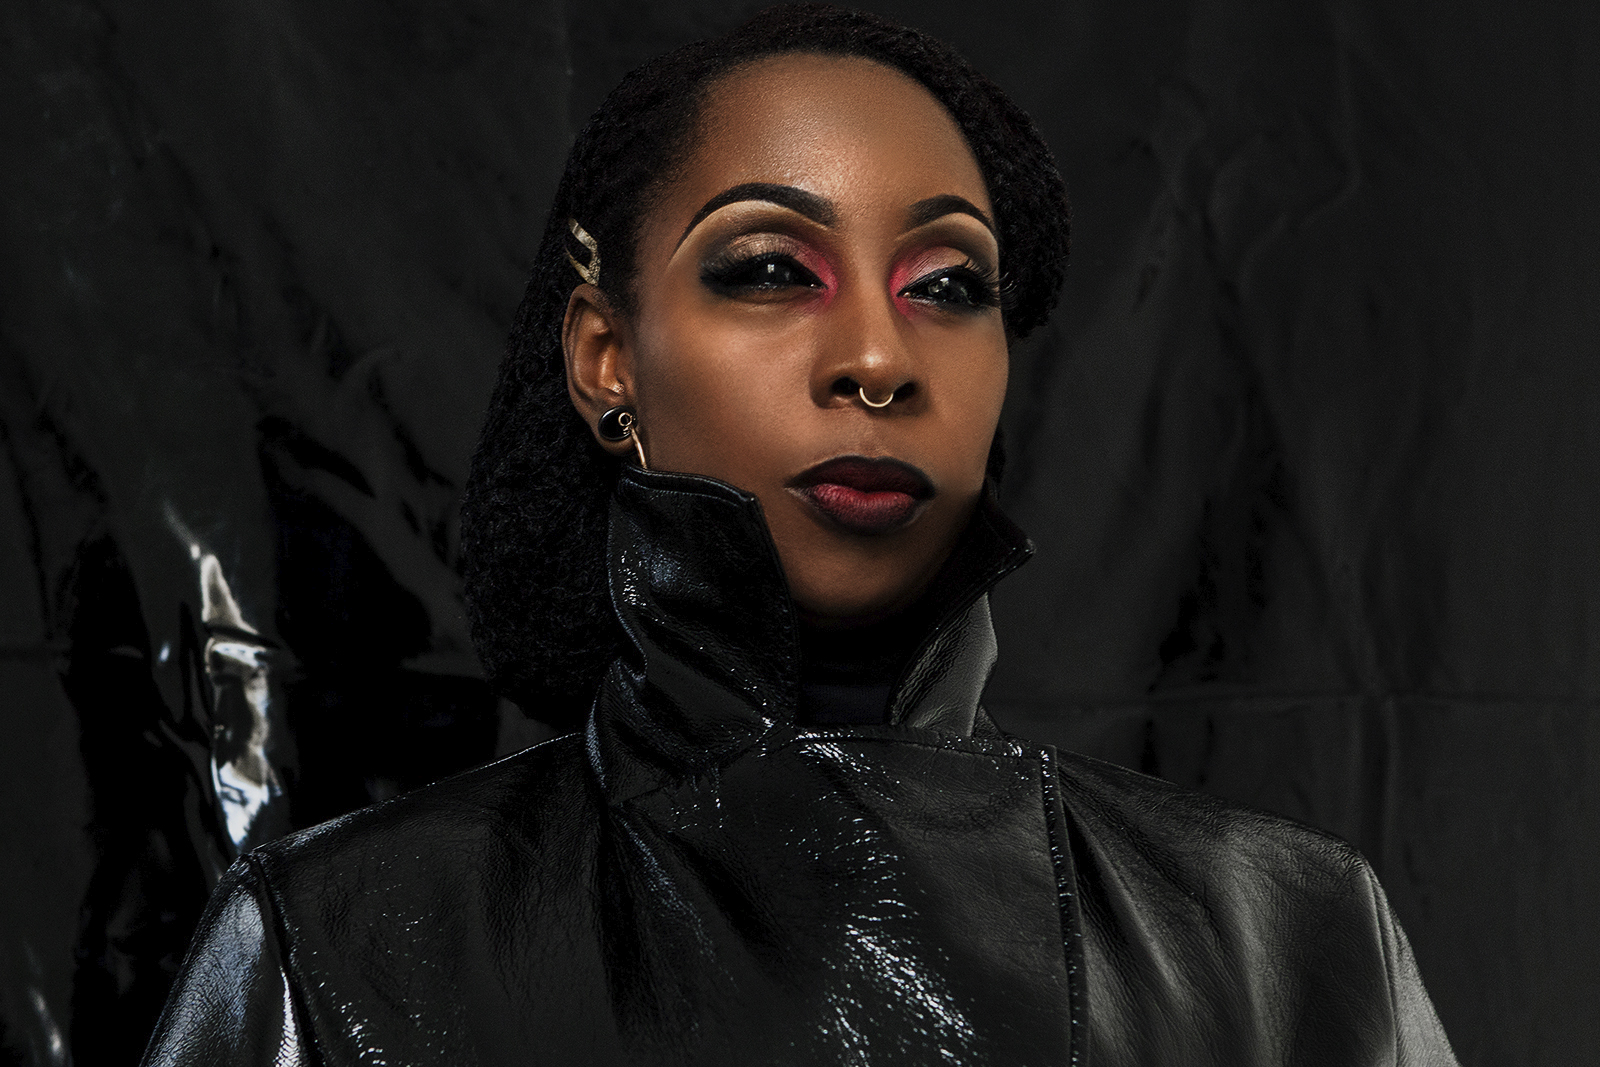 Promotional image for new performance Black on Black: 24R, featuring artist Zinzi Minott wearing black shiny coat and powerful make up, photo by Kofi Paintsil